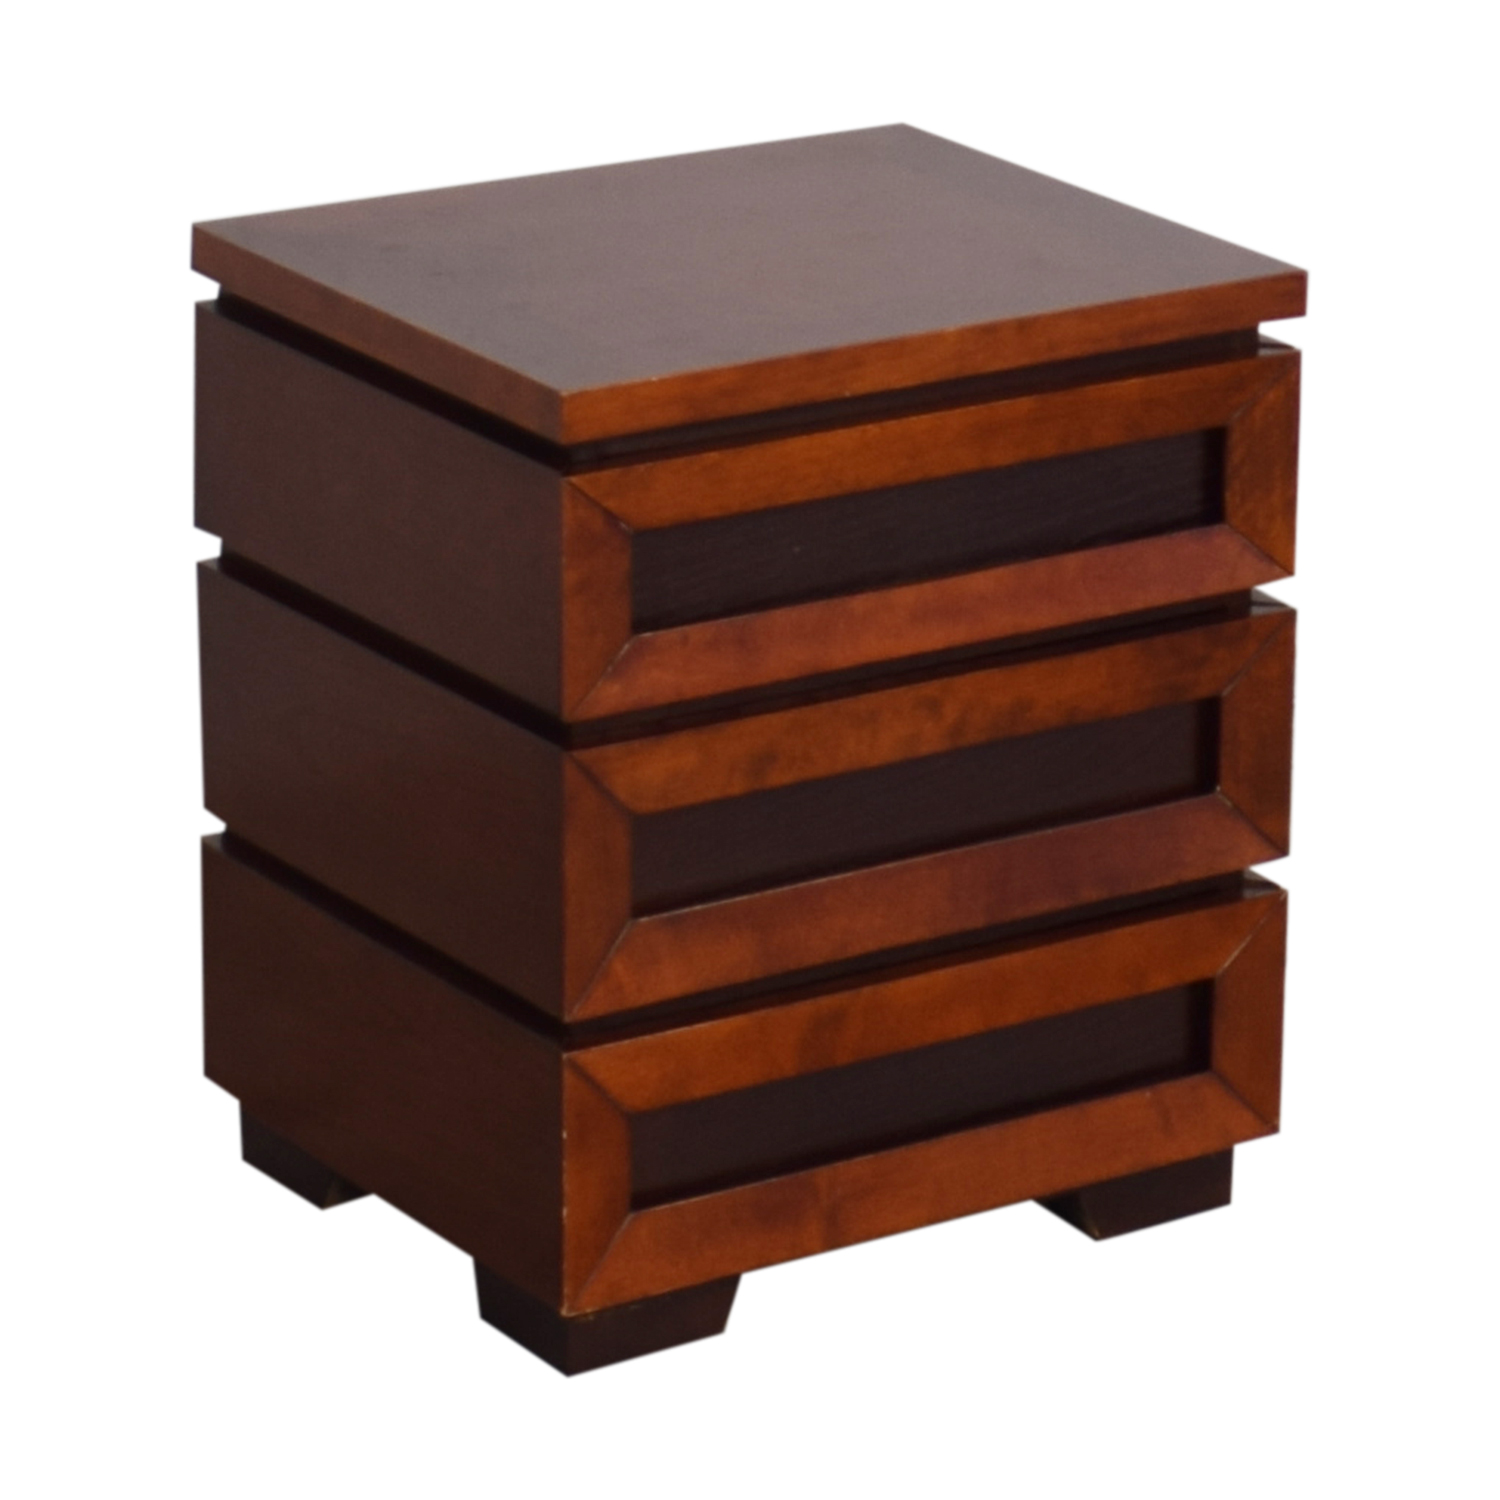 Crate & Barrel Crate & Barrel Side Table with Drawers Tables